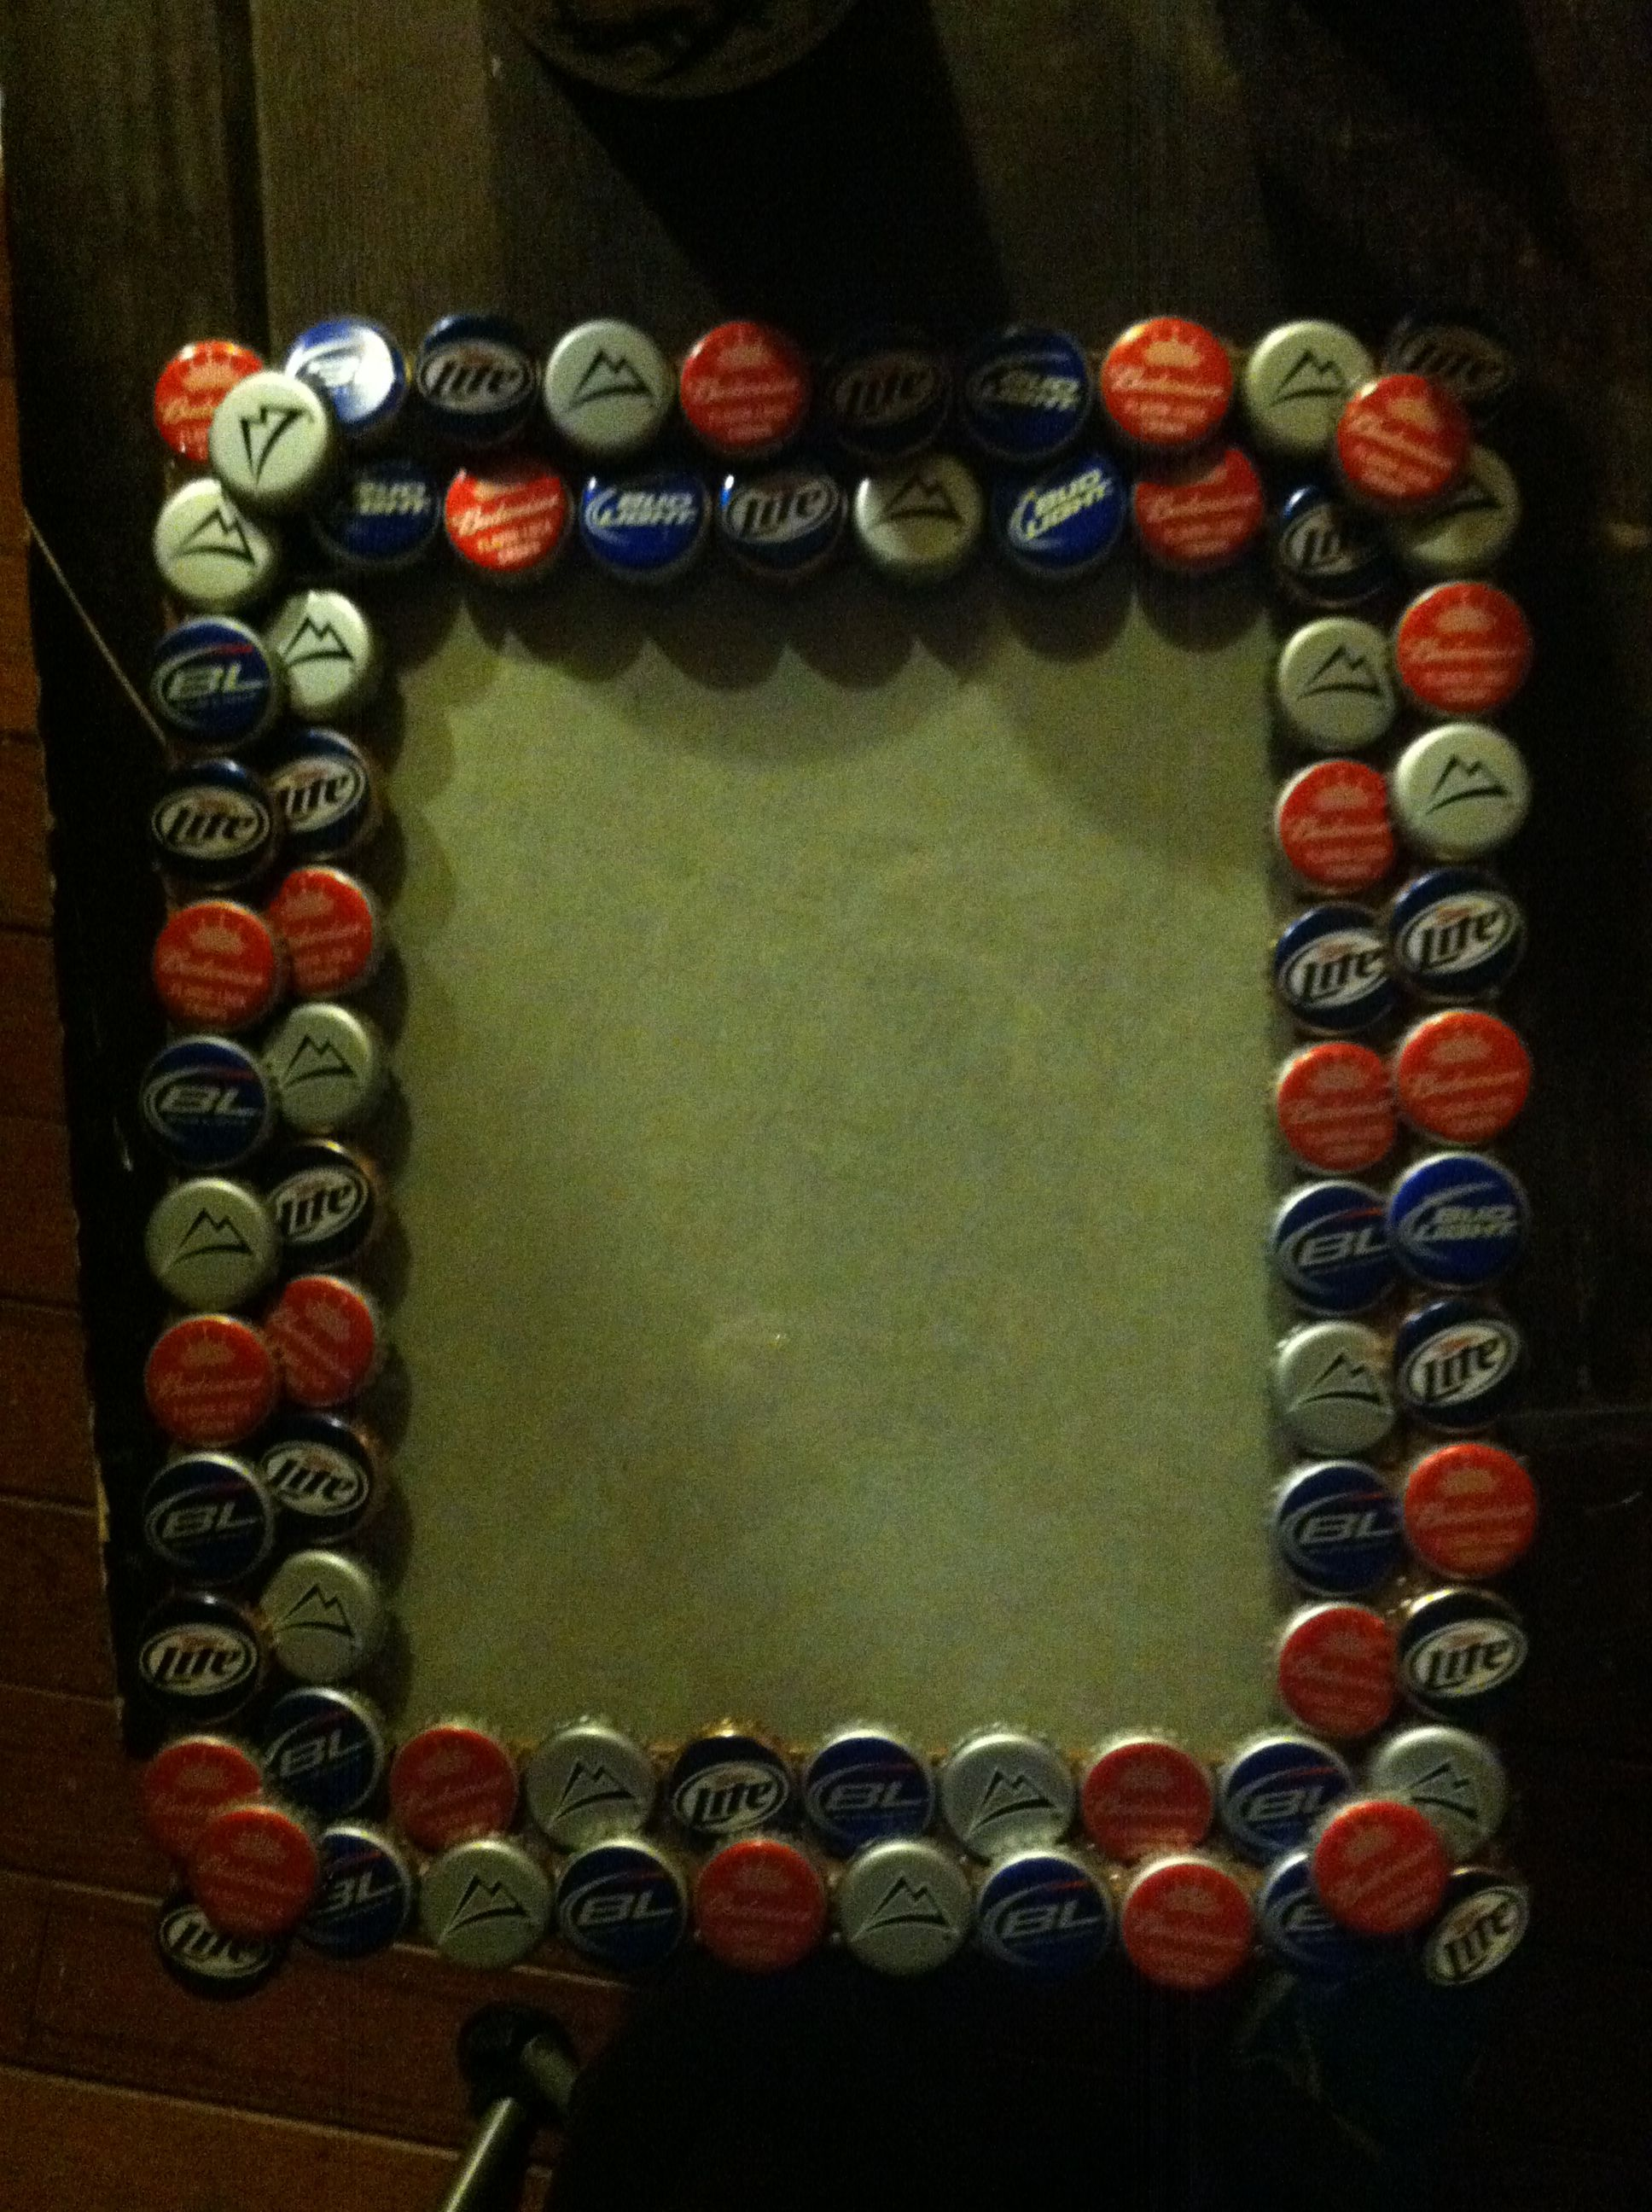 Beer stuff on pinterest santa cruz bottle caps and for Beer bottle picture frame